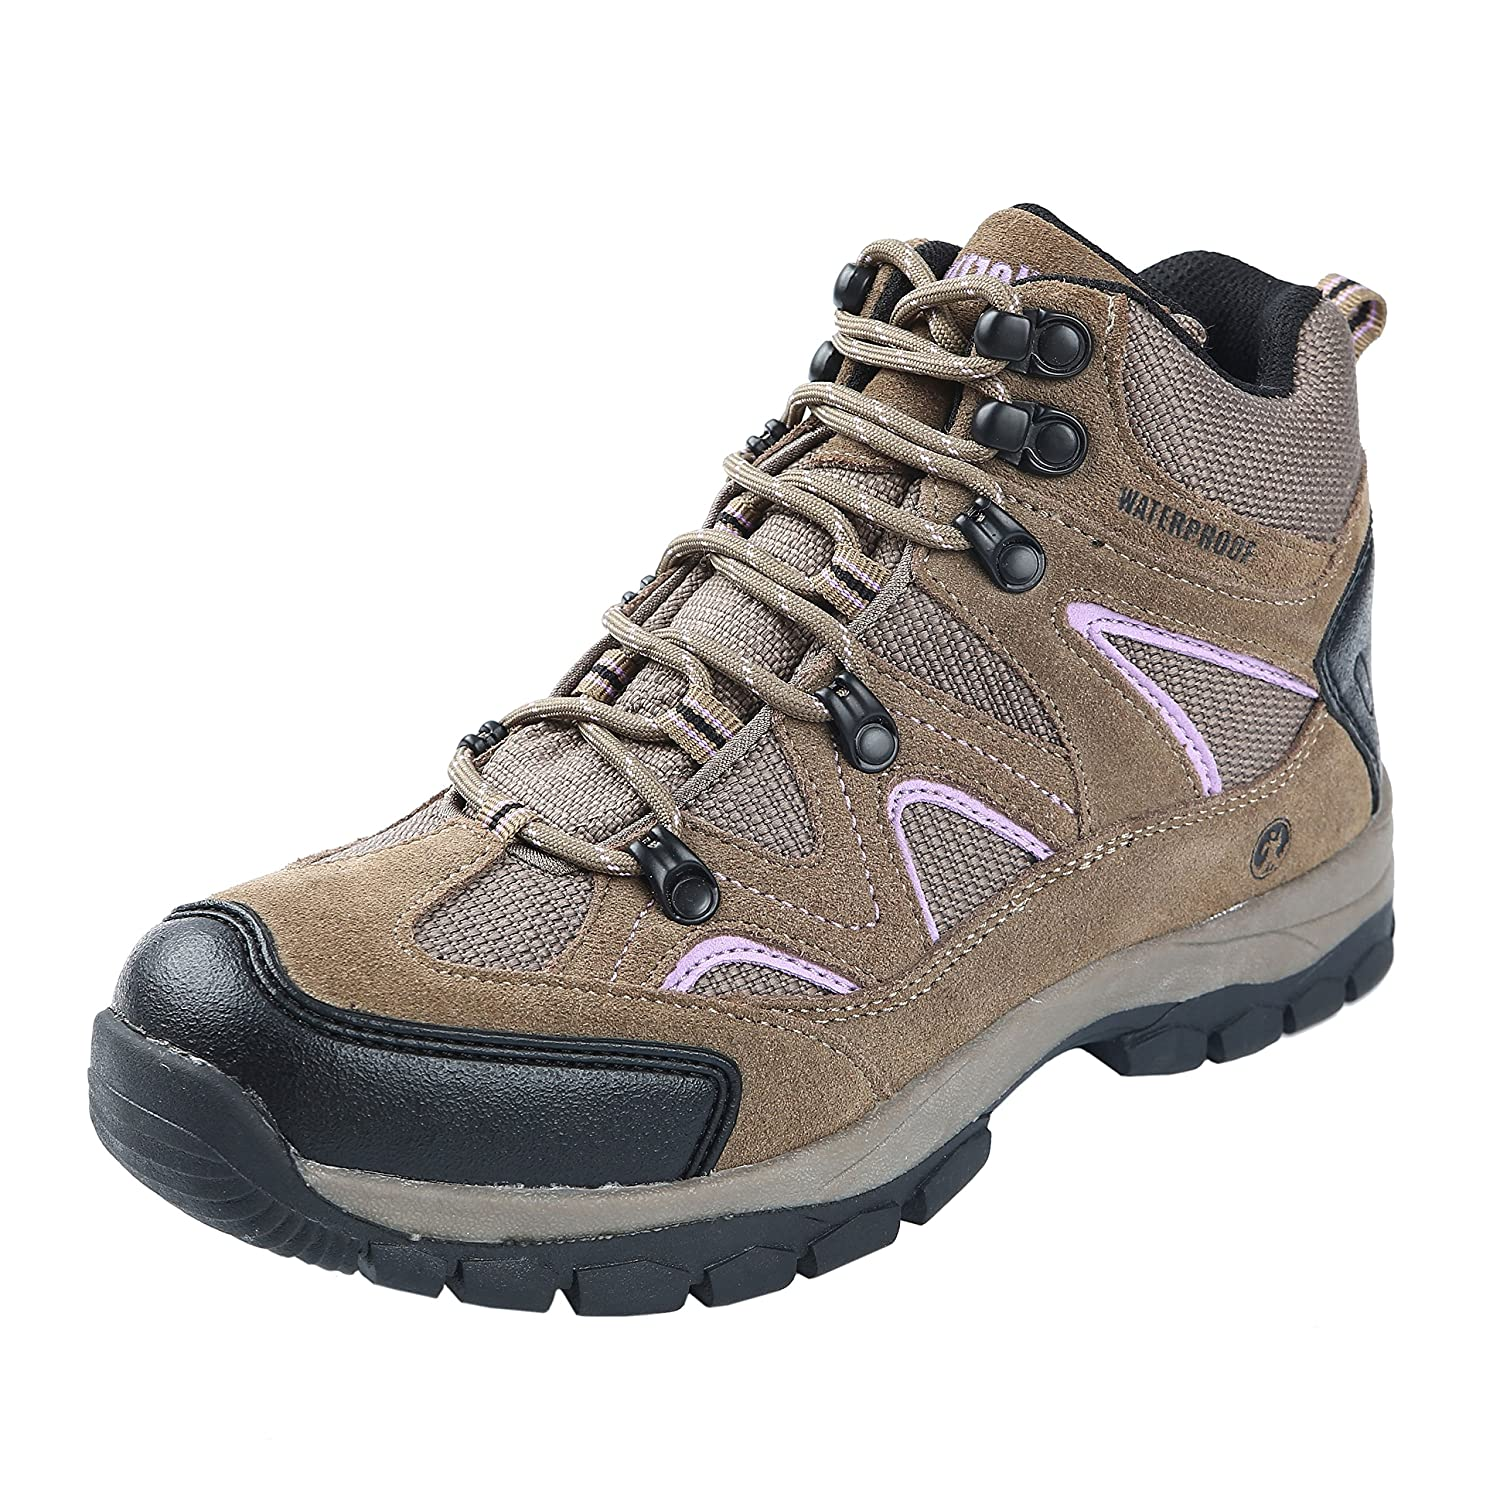 Northside Women's Snohomish Waterproof Hiking Boot B00MGQW96E 8 B(M) US|Tan/Periwinkle